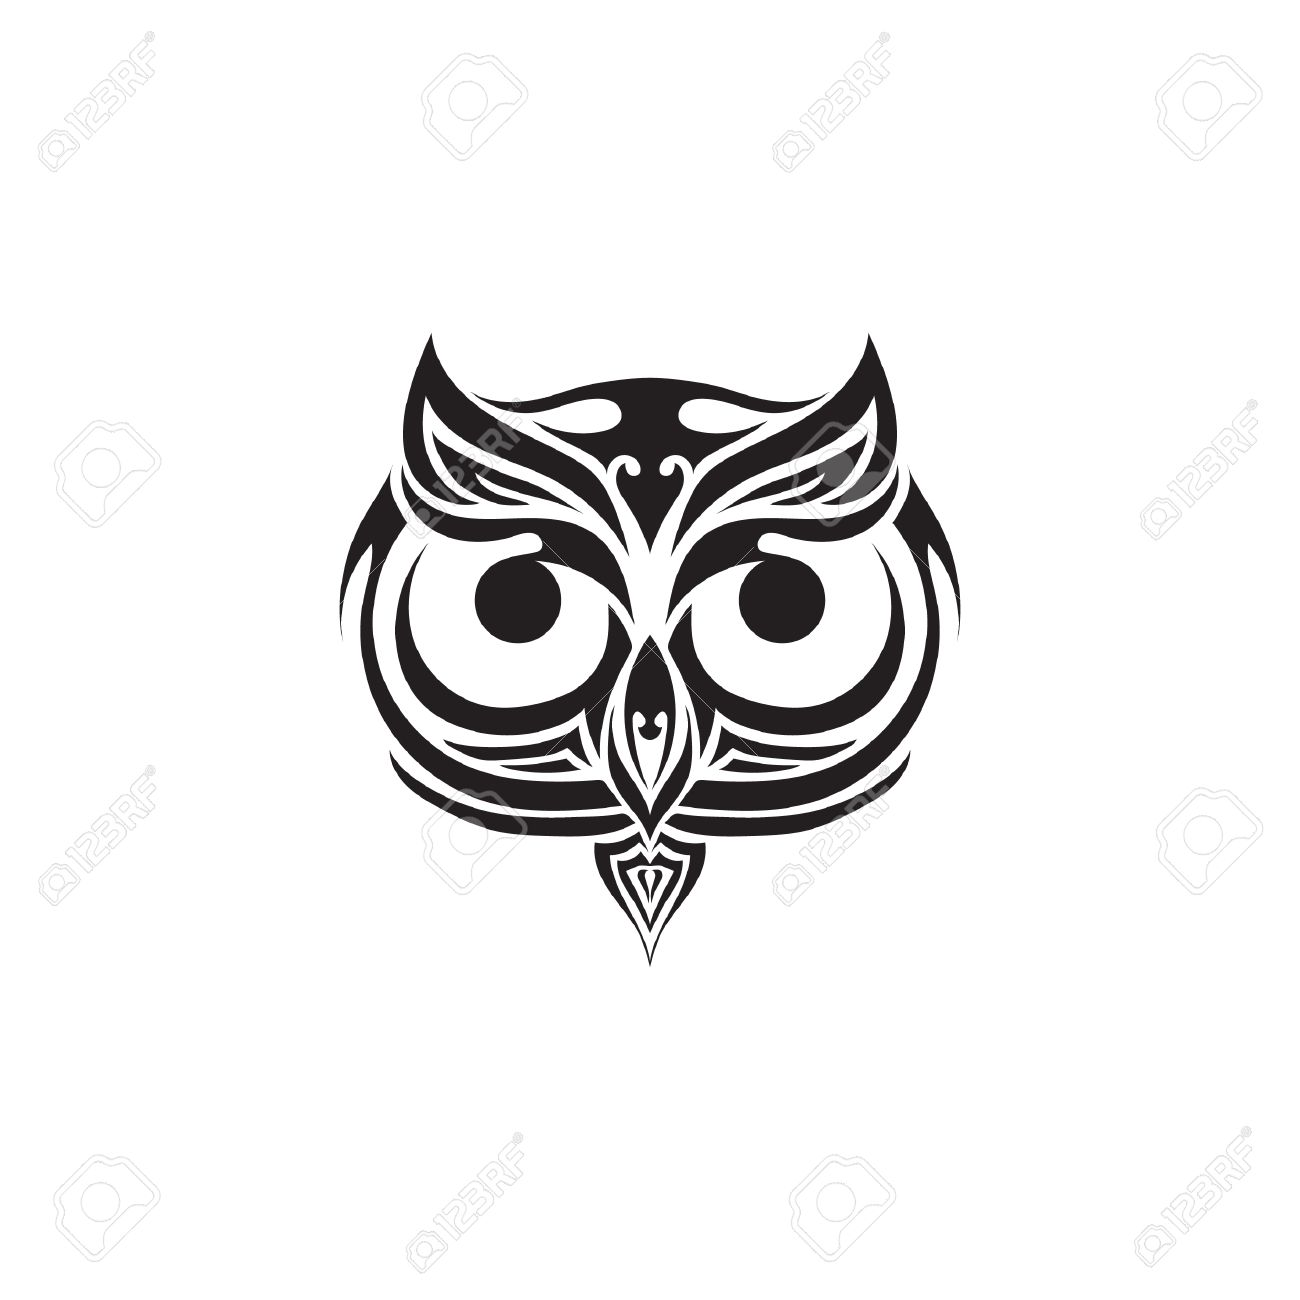 Owl Tattoo Design Royalty Free Cliparts, Vectors, And Stock ...